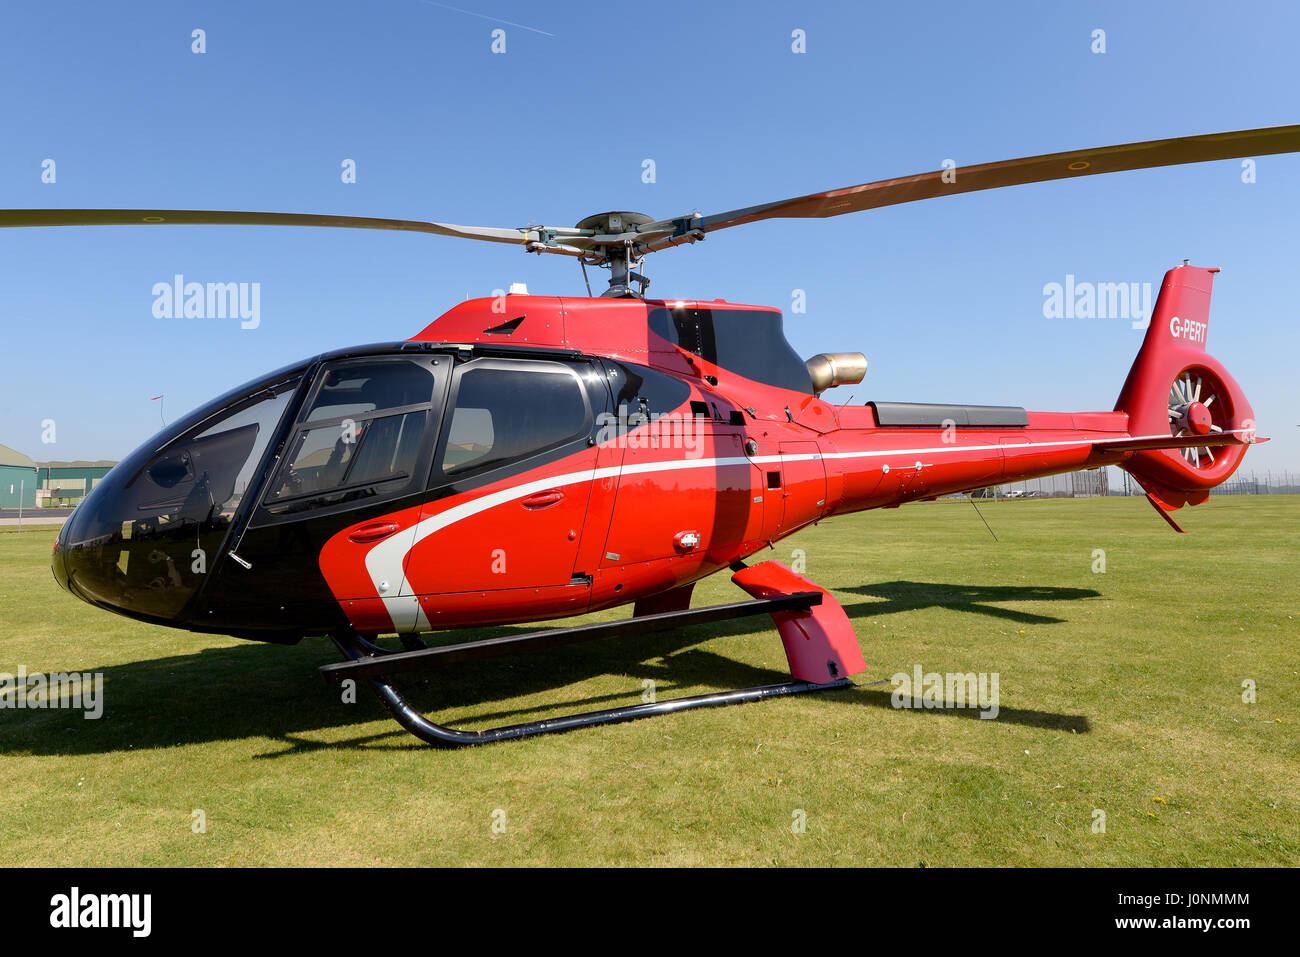 Airbus EC130 G-PERT helicopter at the fiftieth anniversary event of the Gazelle at Middle Wallop, Hampshire, UK.Space - Stock Image